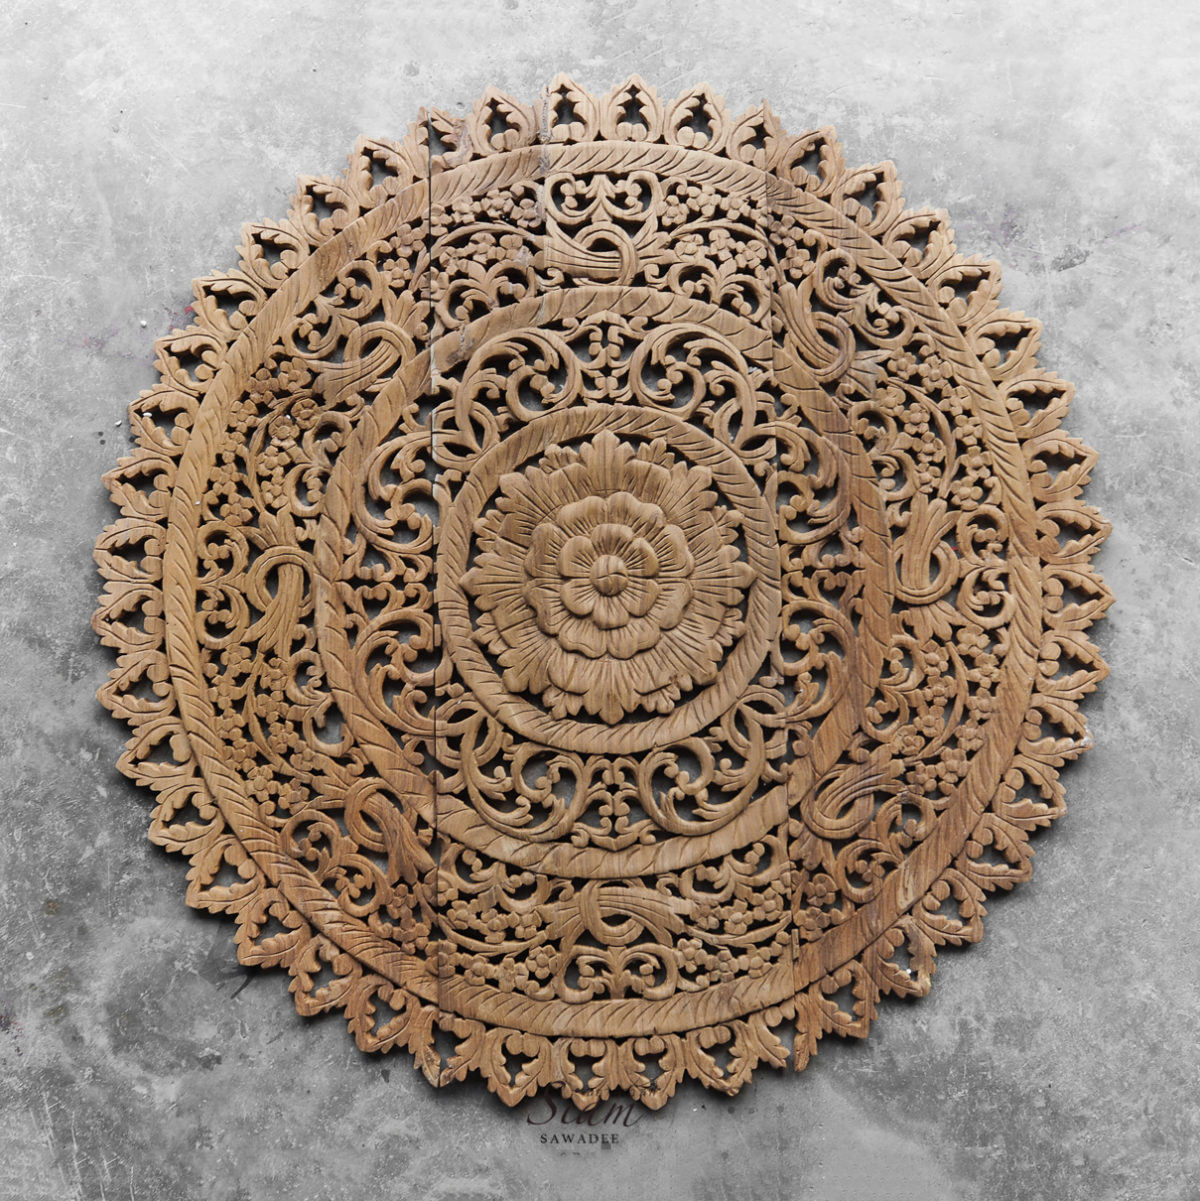 Natural Reclaim Teak Wood Carving Wall Panel From Thailand 3x3ft 1 1200x1201 - Distressed Mandala Carved Wood Wall Panel